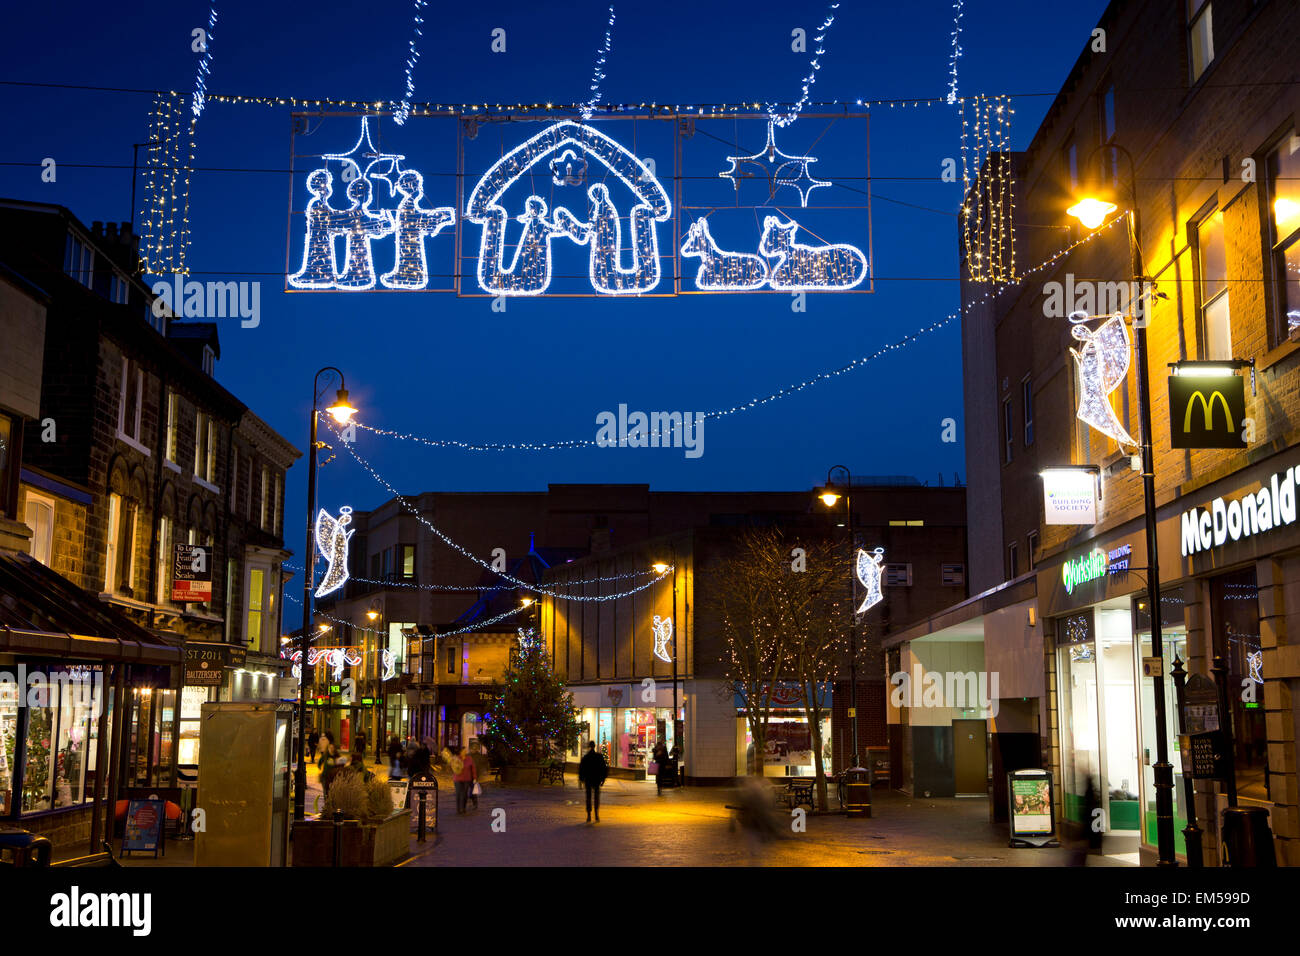 UK, England, Yorkshire, Harrogate at Christmas, Oxford Street illuminations - Stock Image